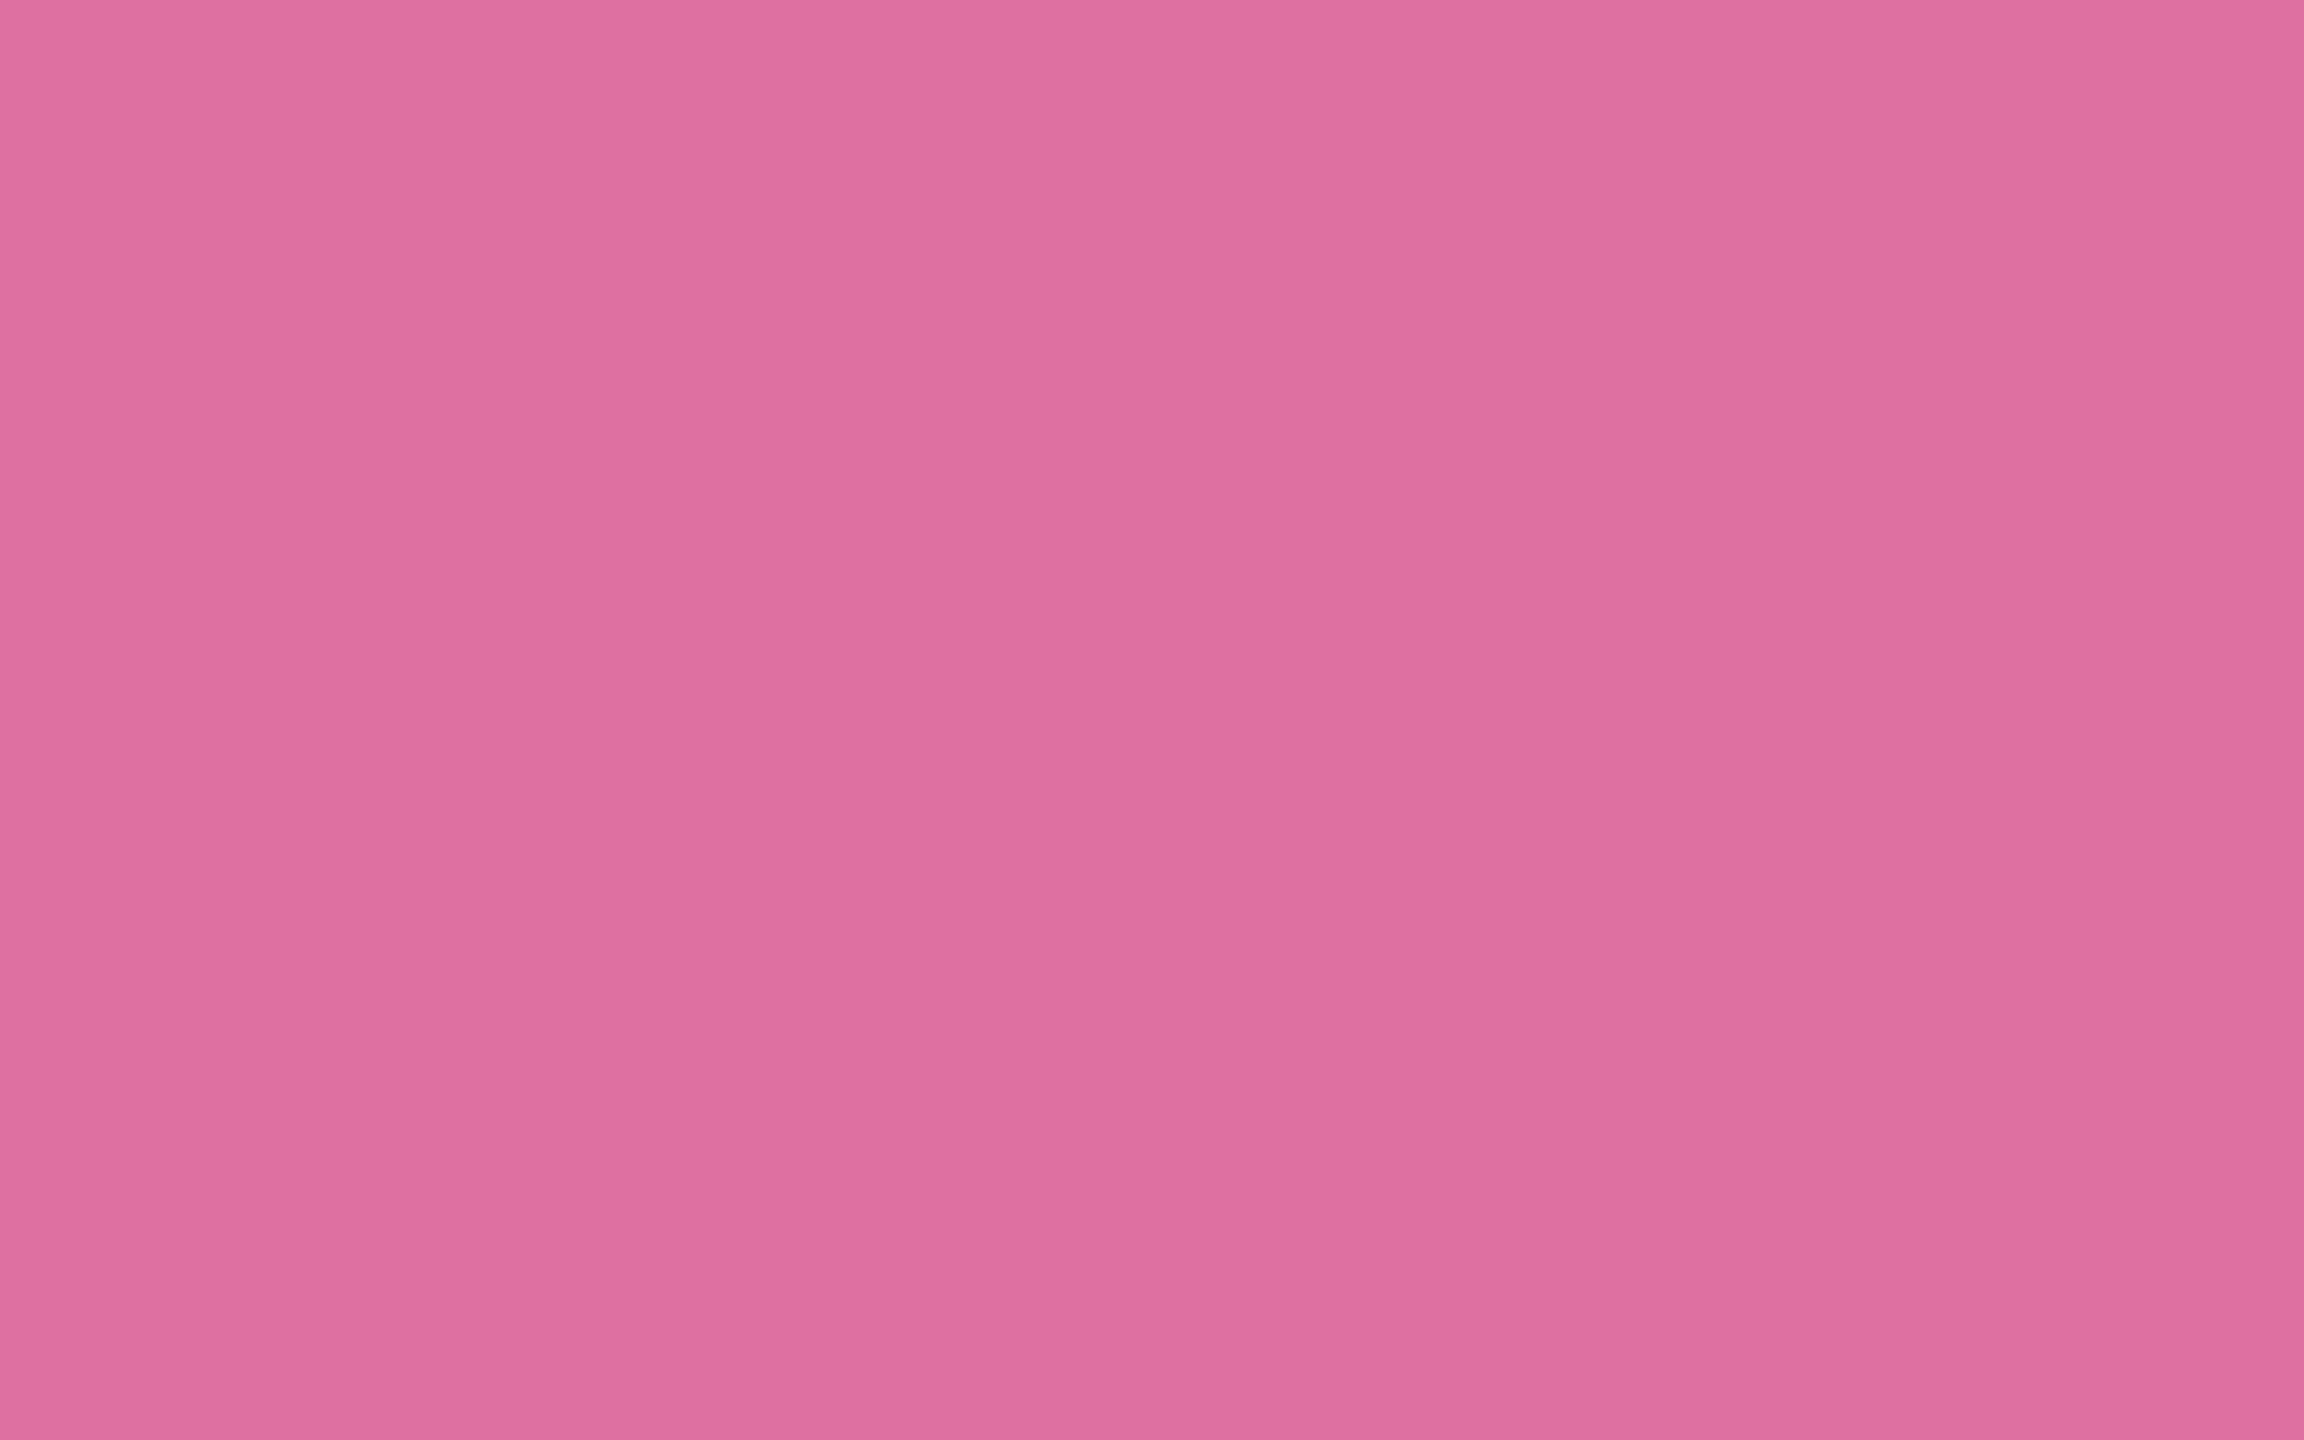 2304x1440 China Pink Solid Color Background